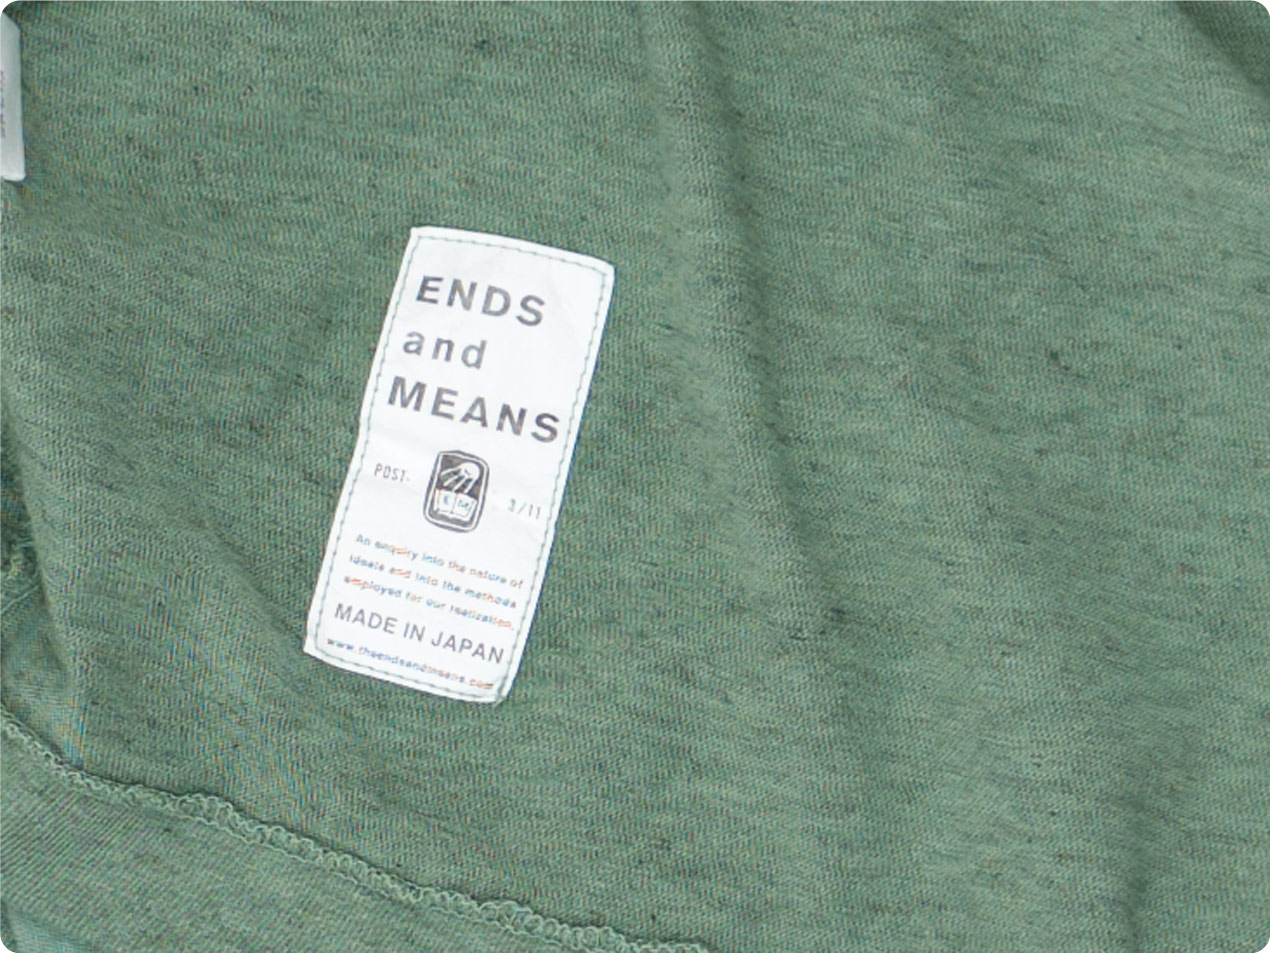 ENDS and MEANS Pocket Tee